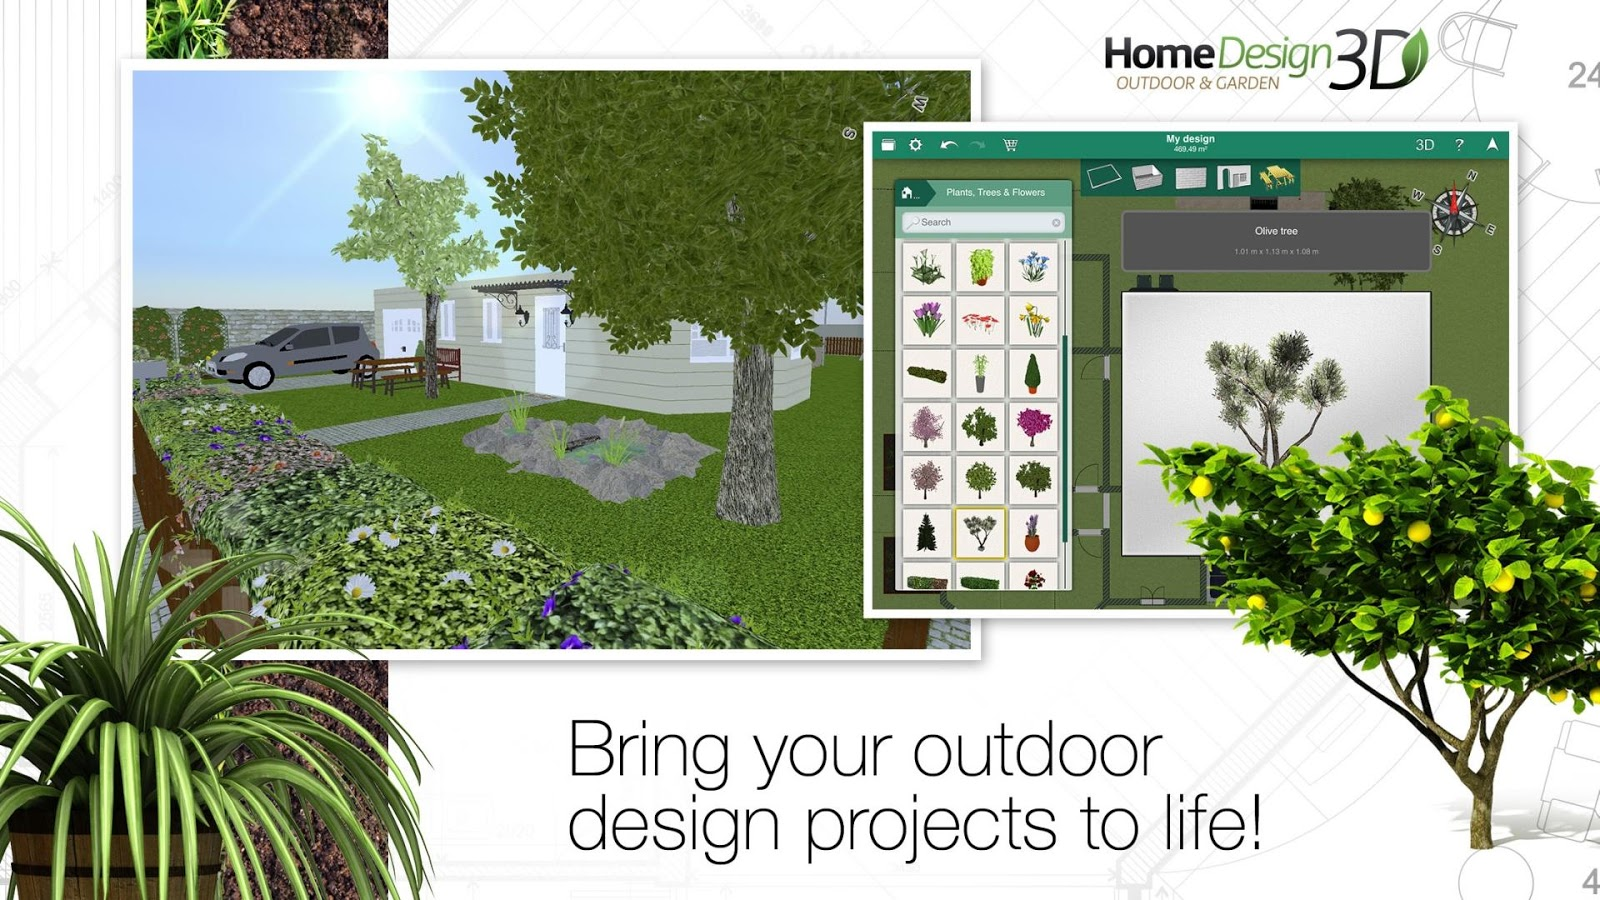 Home design 3d outdoor garden slides into the play store for 3d pool design online free